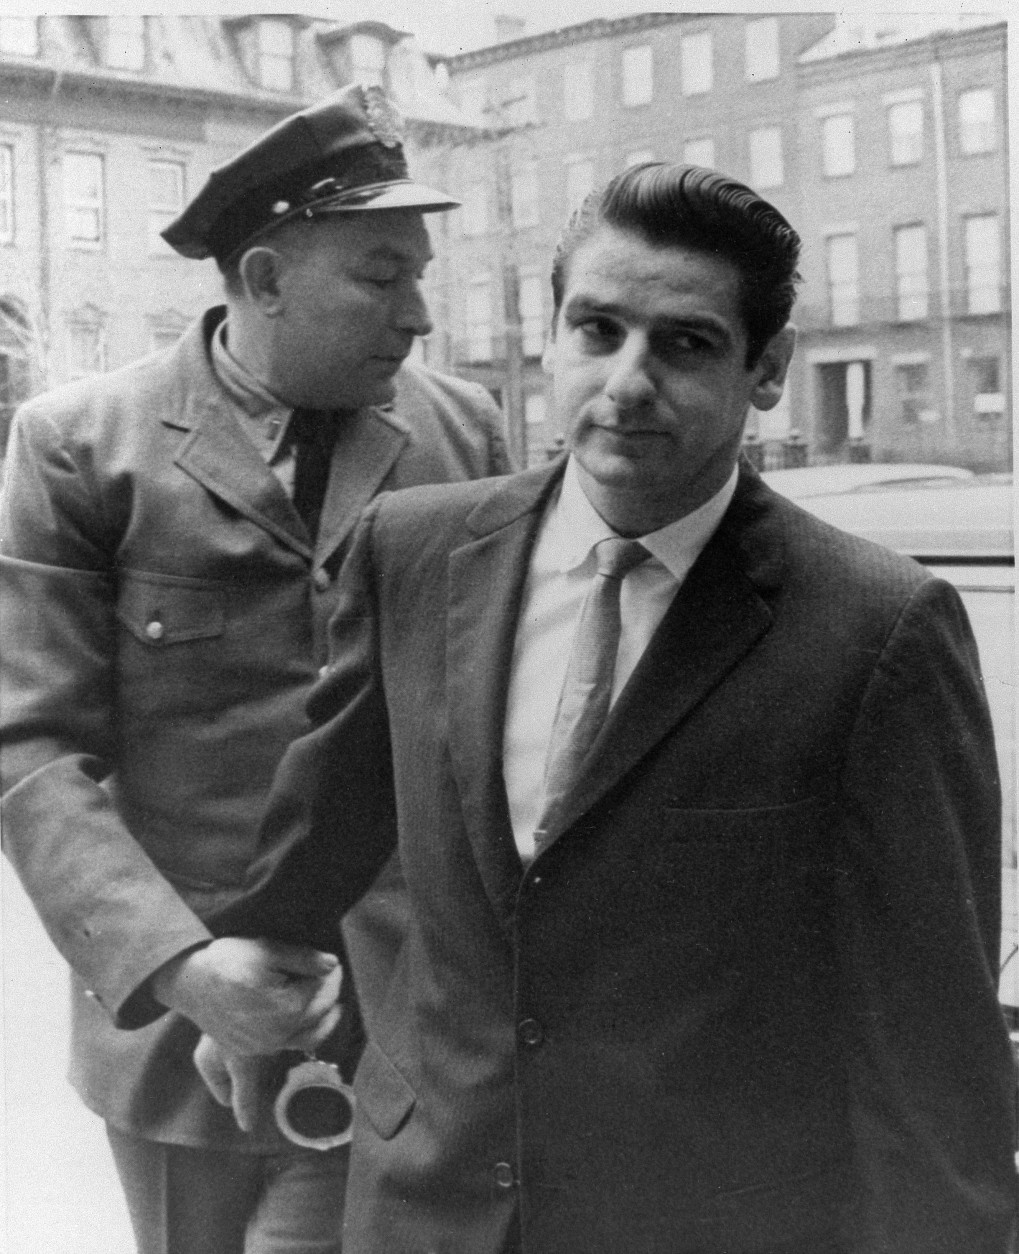 Albert DeSalvo, 34-year-old mental patient who says he is the Boston Strangler, arrives at court in Cambridge, Mass., Jan. 10, 1967, in police custody for trial on a variety of charges not related to the stranglings.  (AP Photo)